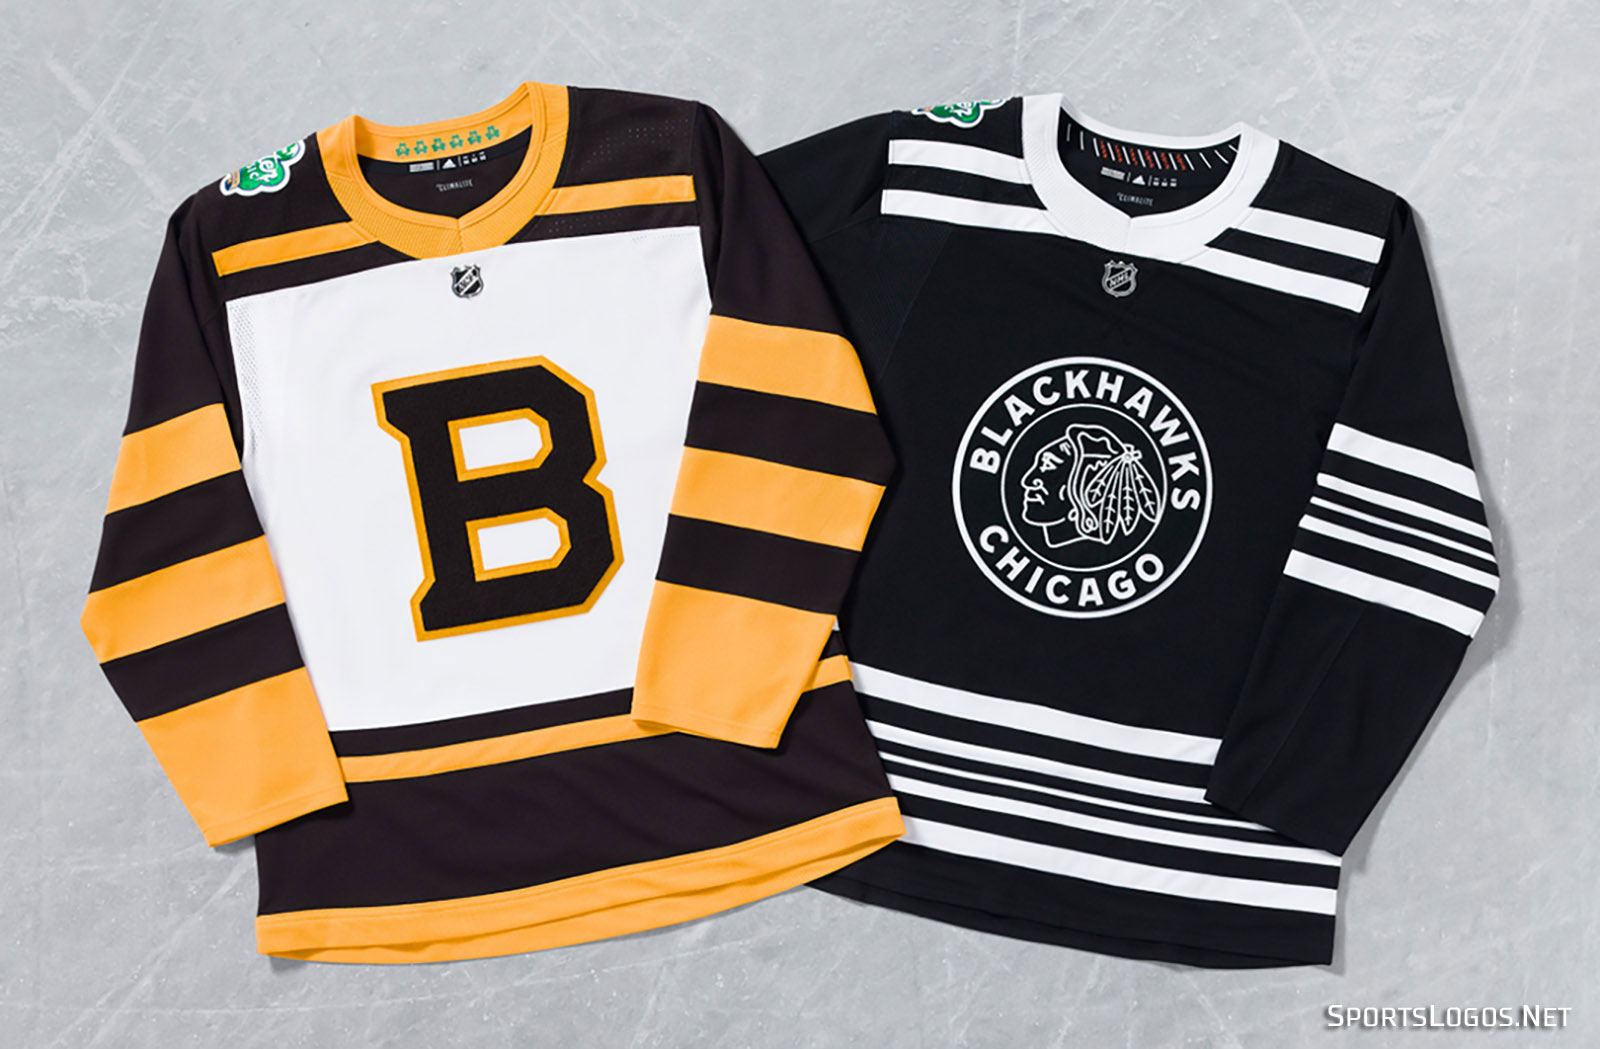 28482e53495 Now *this* is what I'd call a fantastic uniform matchup, can't wait to see  it on the ice… hopefully we can see it in an indoor setting too sometime  soon